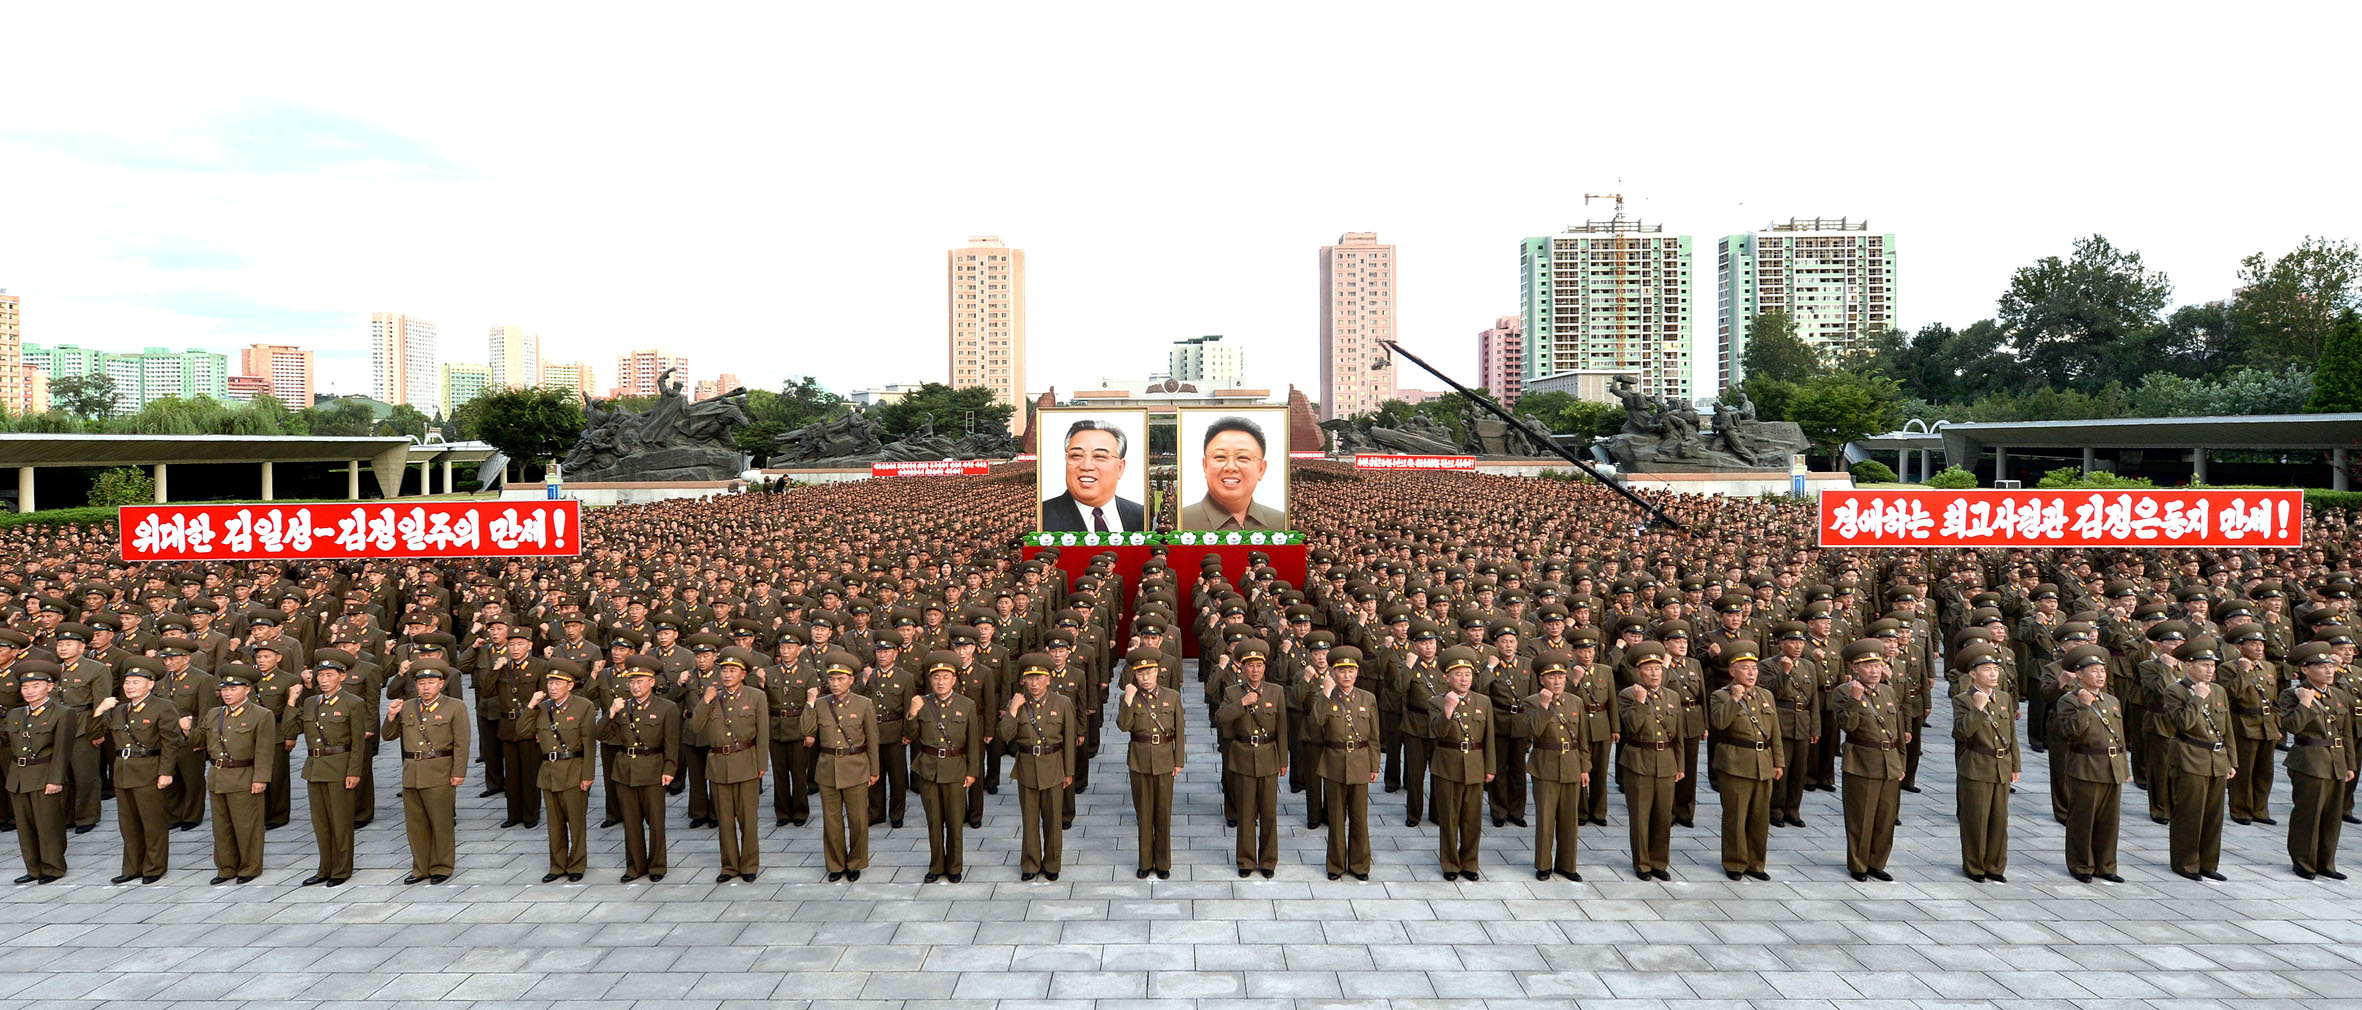 Servicepersons of the Ministry of People's Security met on August 10, 2017 to express full support for the Democratic People's Republic of Korea (DPRK) government statement, in this photo released on Aug. 11, 2017 by North Korea's Korean Central News...